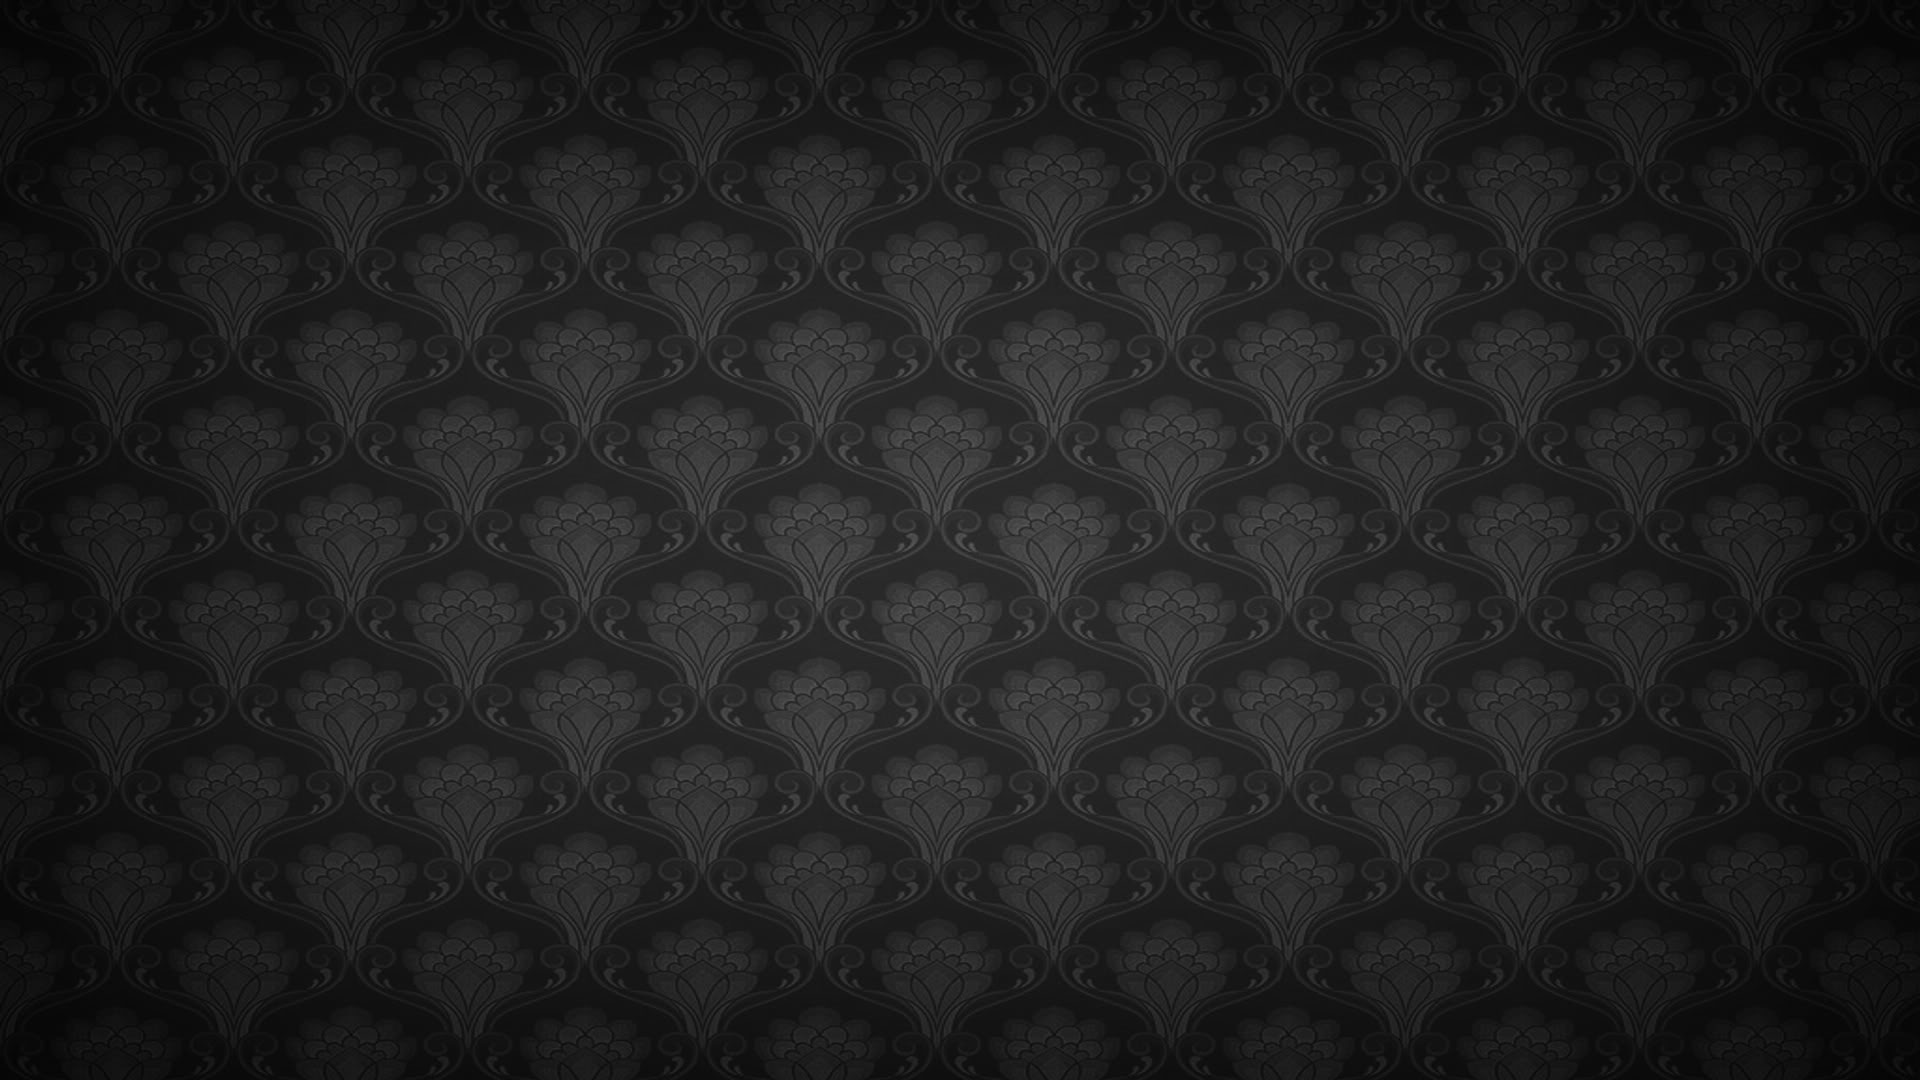 Collection of Hd Website Backgrounds on HDWallpapers